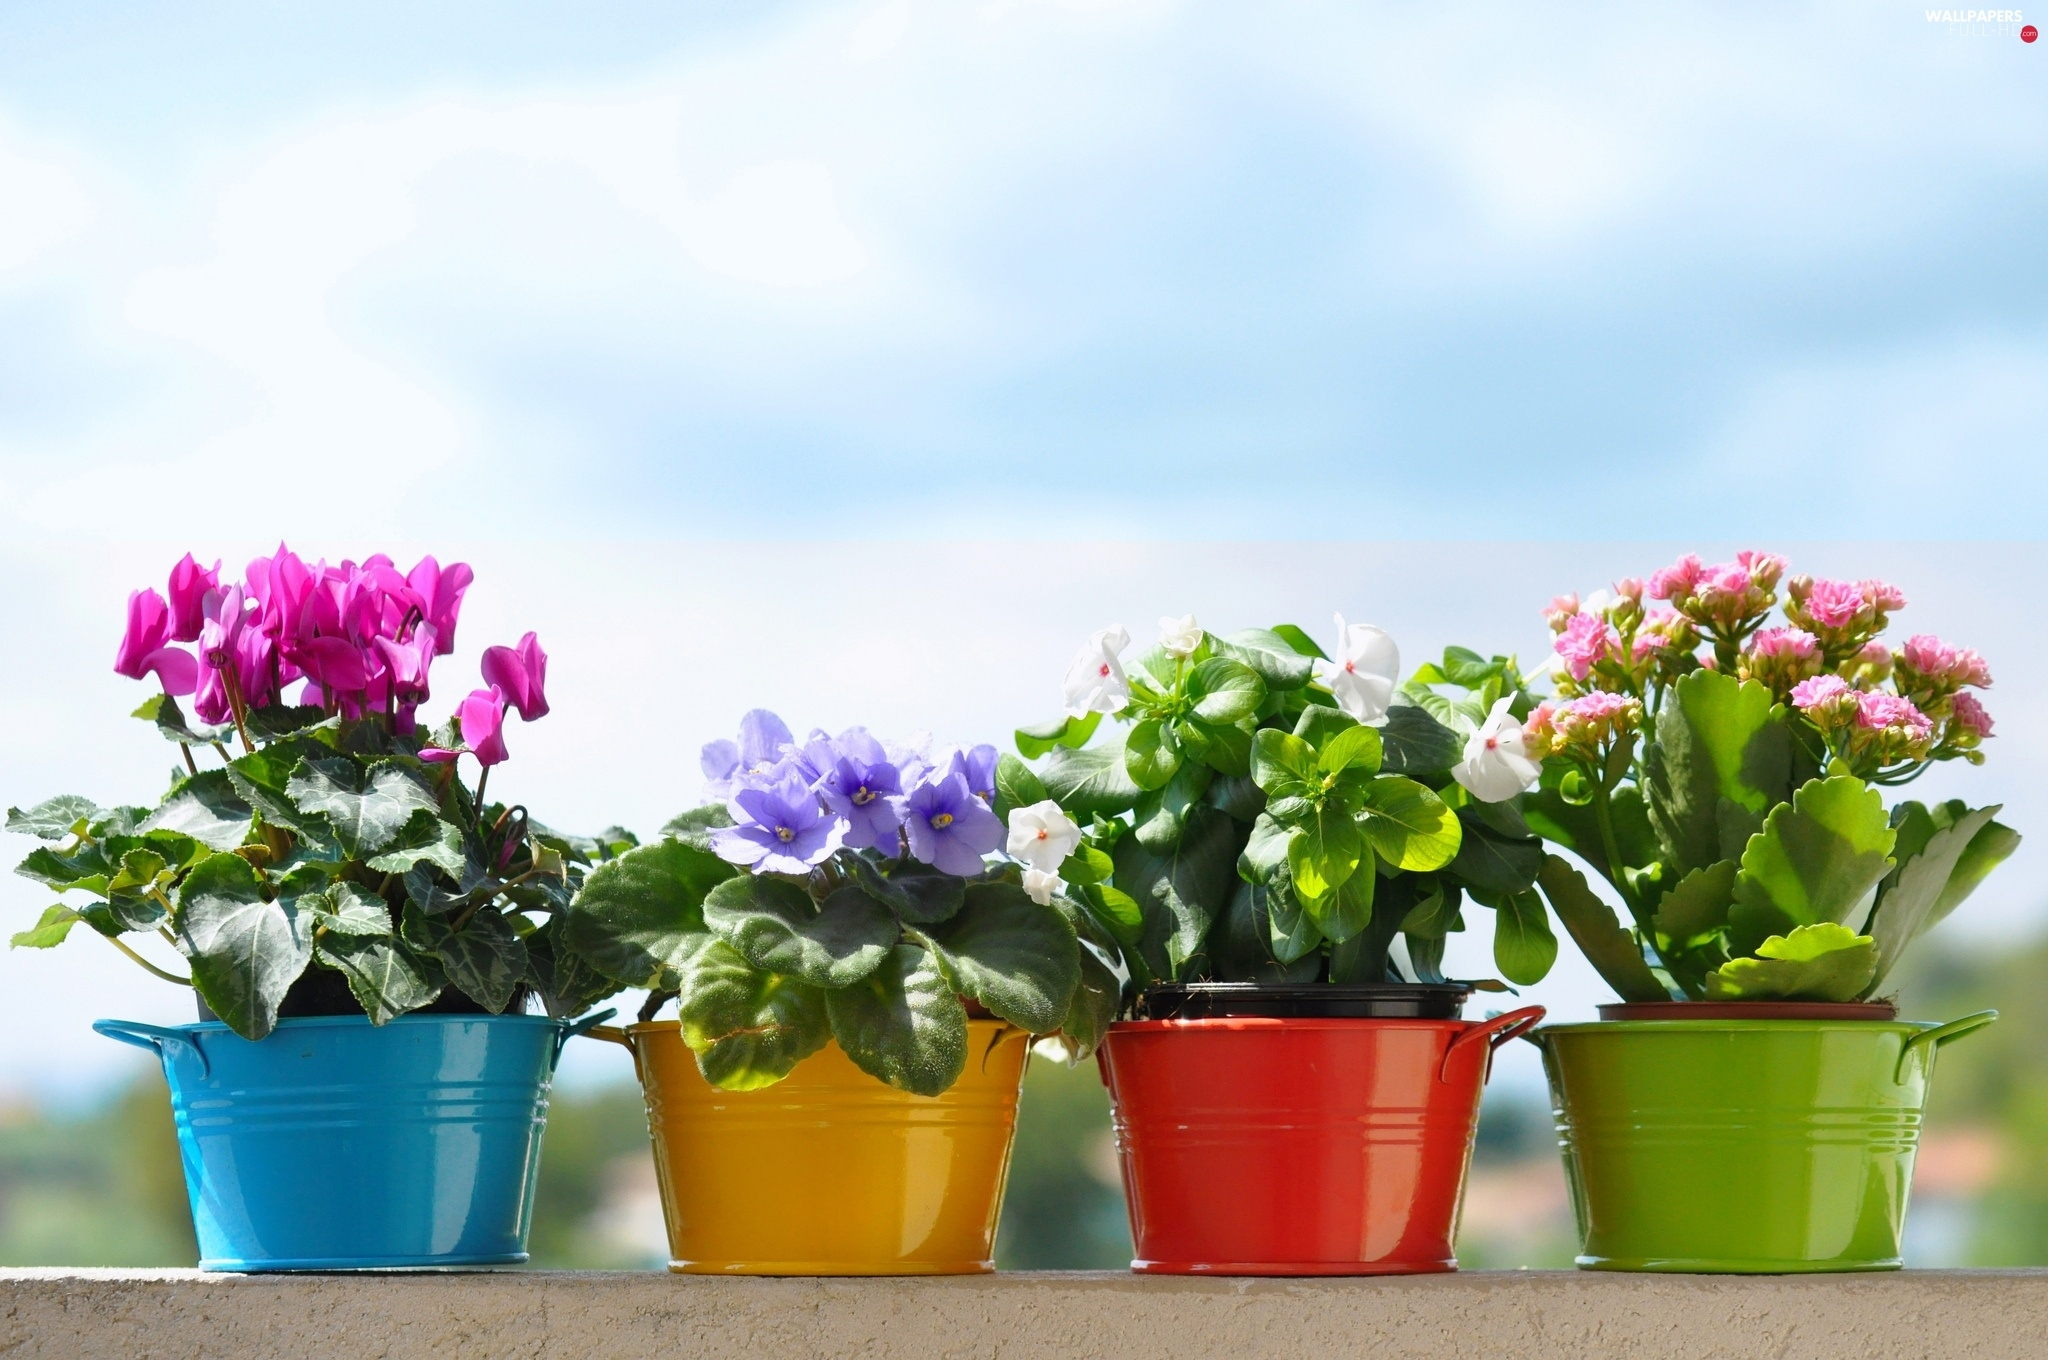 Buckets, color, Flowers, potted